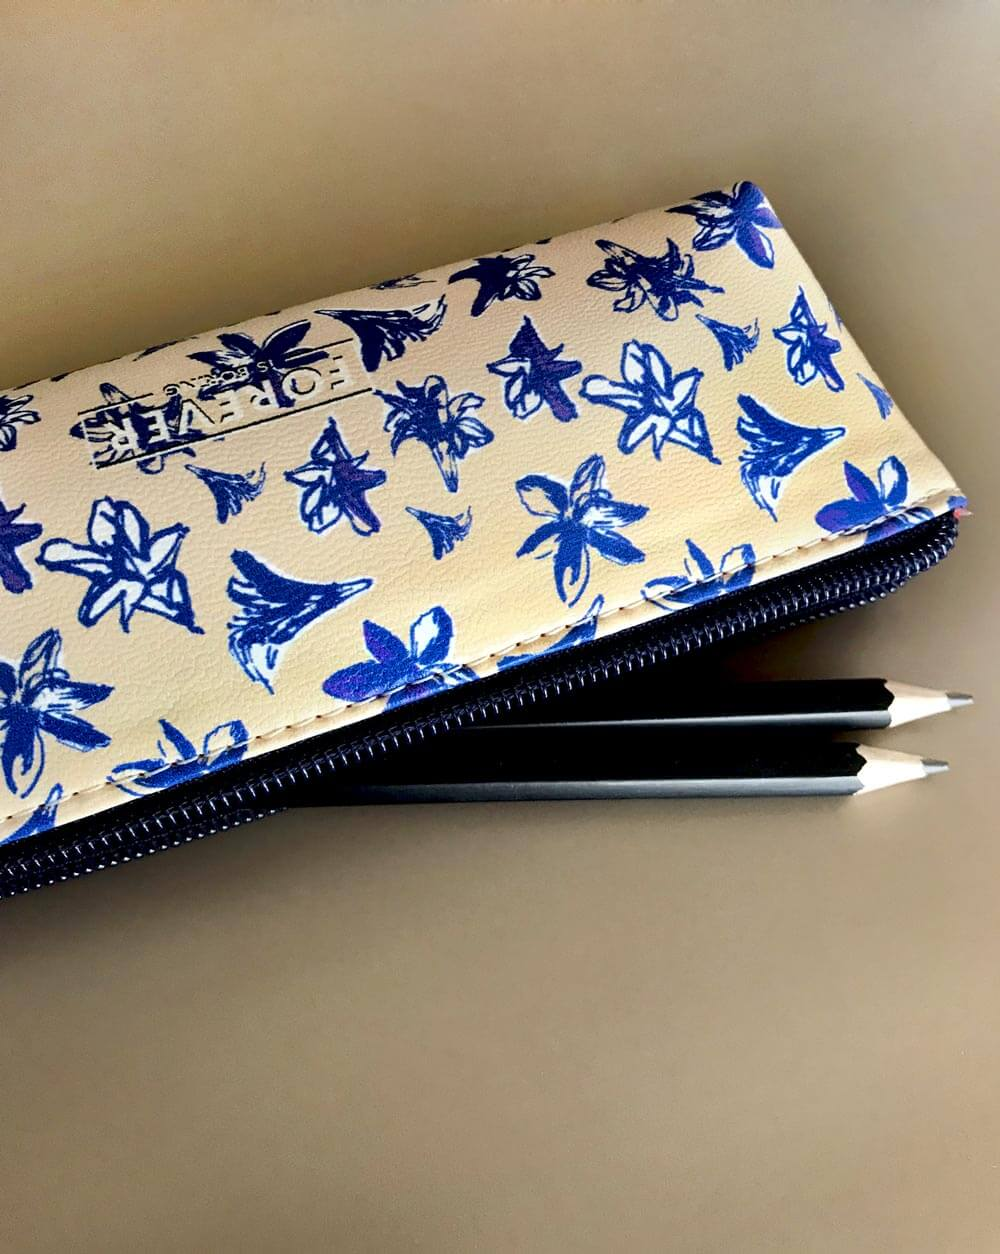 Blossom BL Pencil Case Estuche Estojo 2